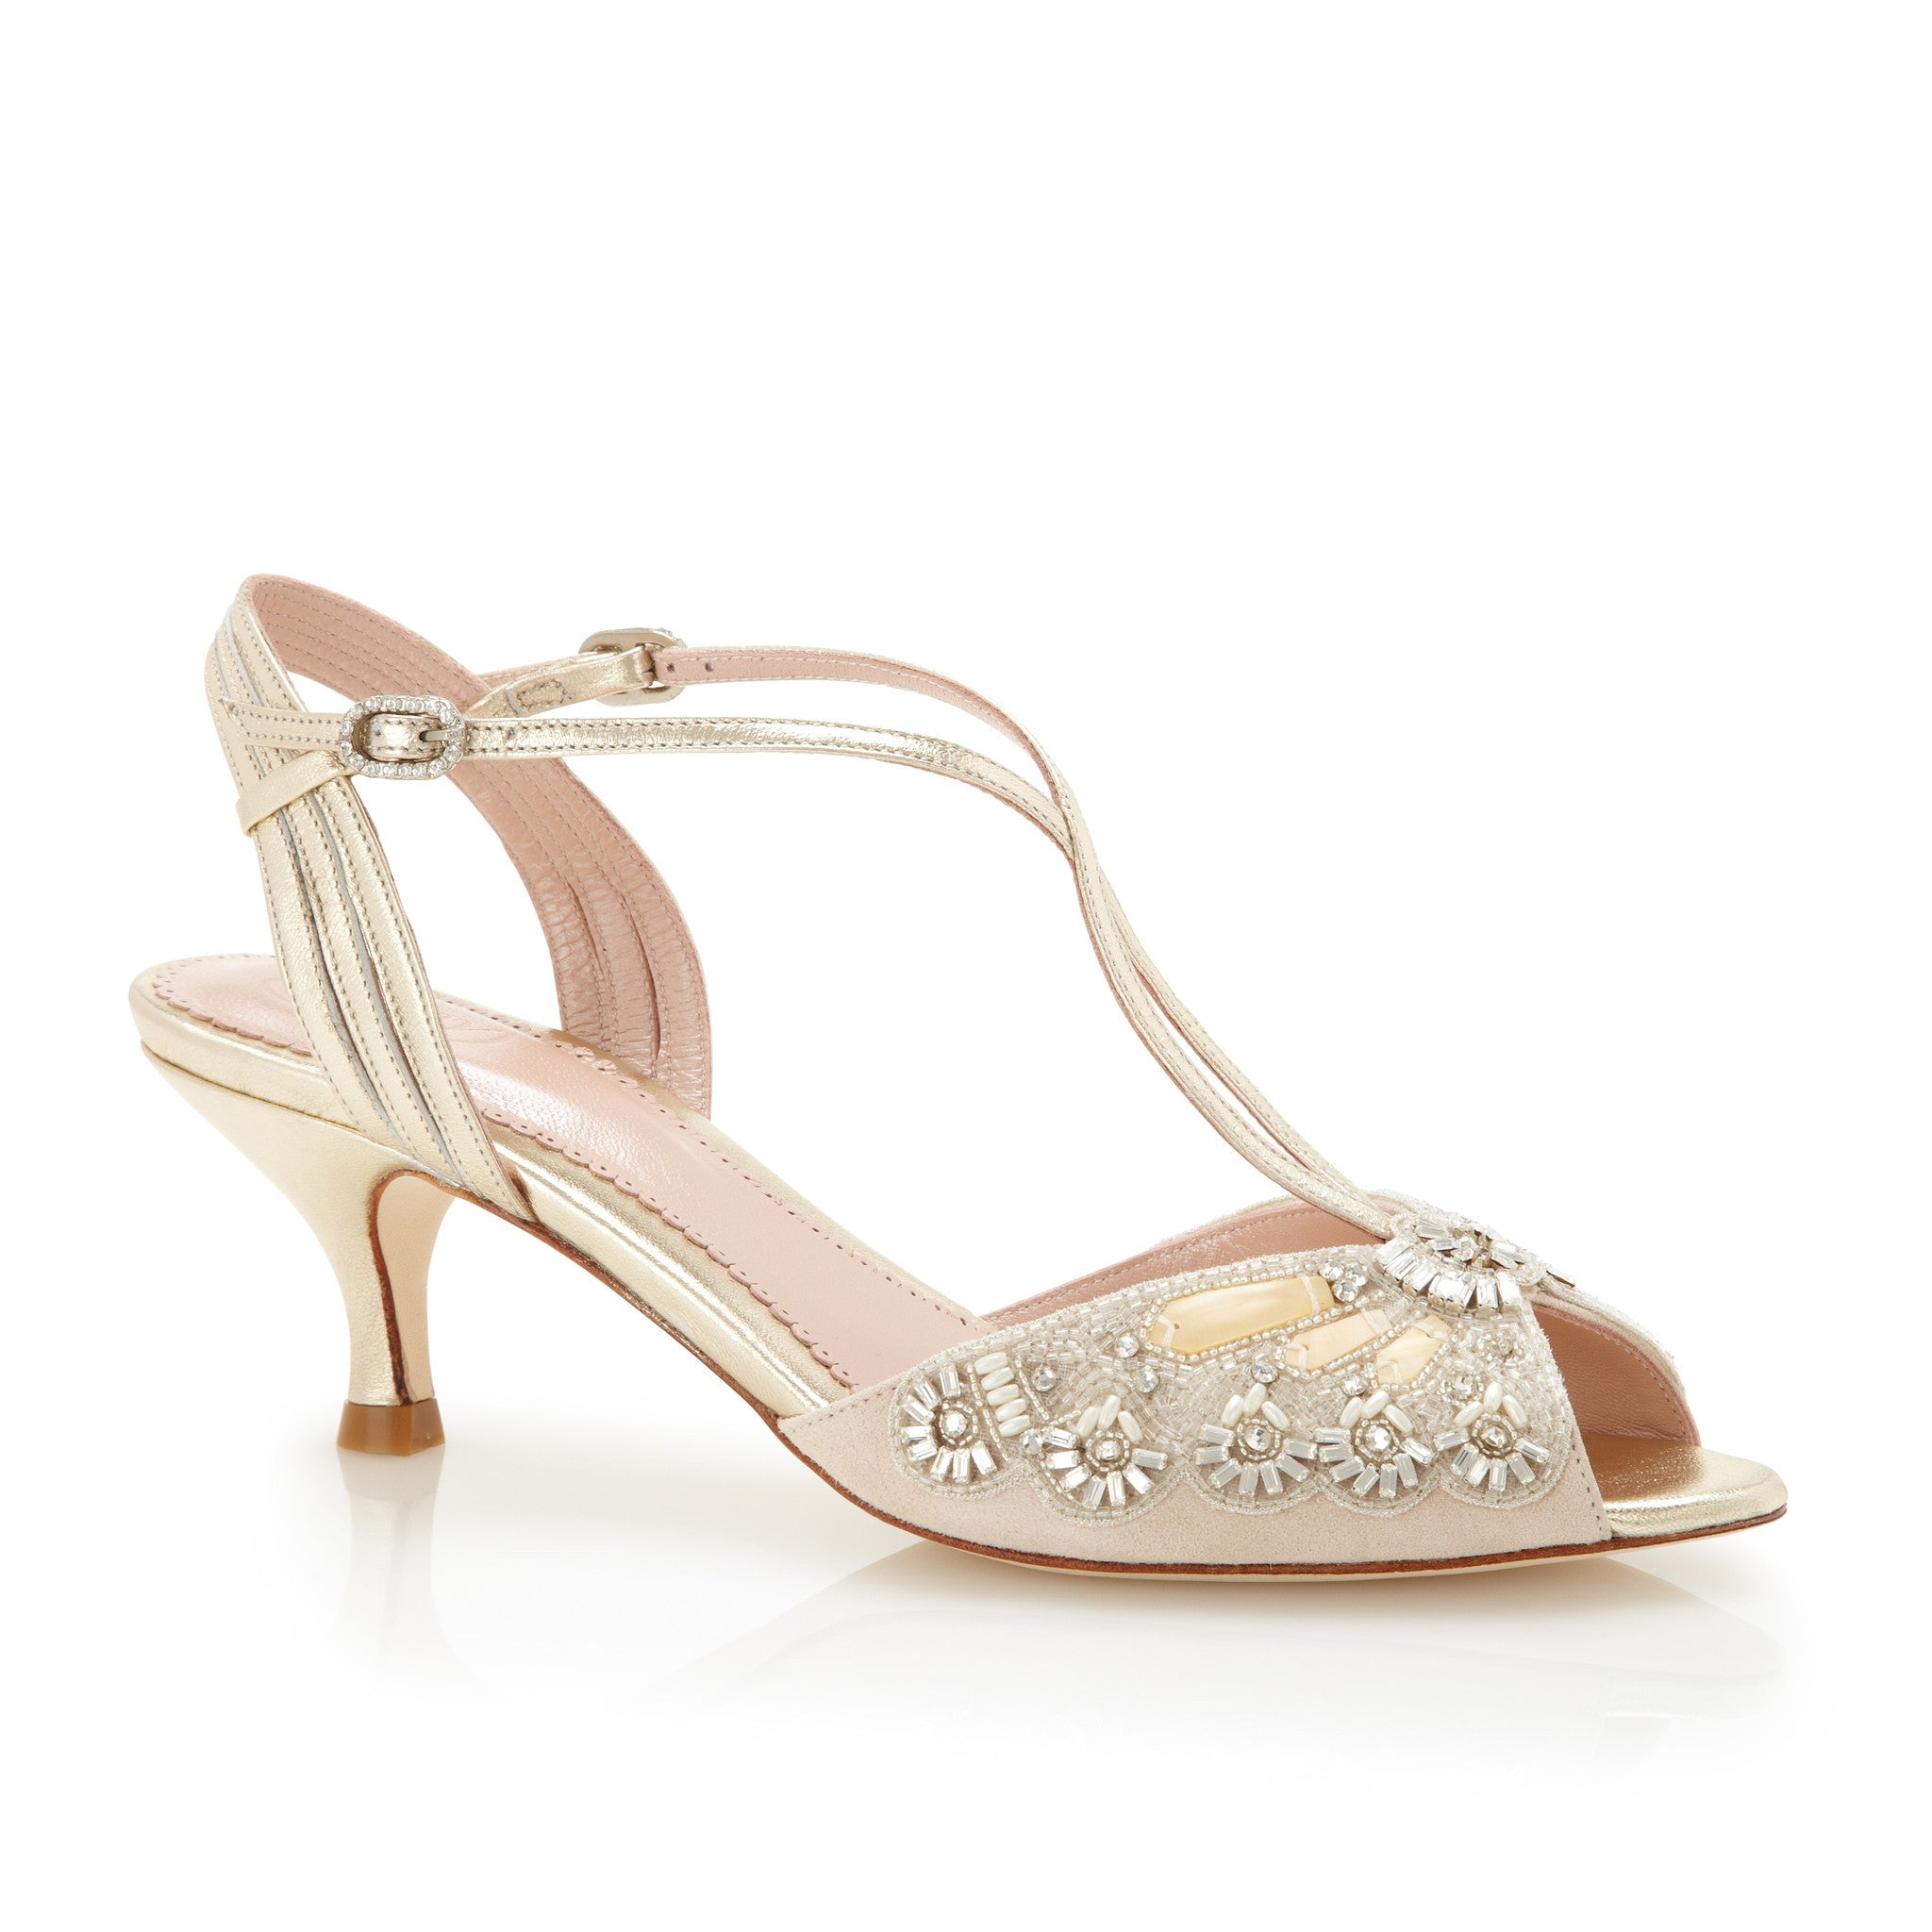 Gold Low Heel Wedding Shoes 4gVivtY2